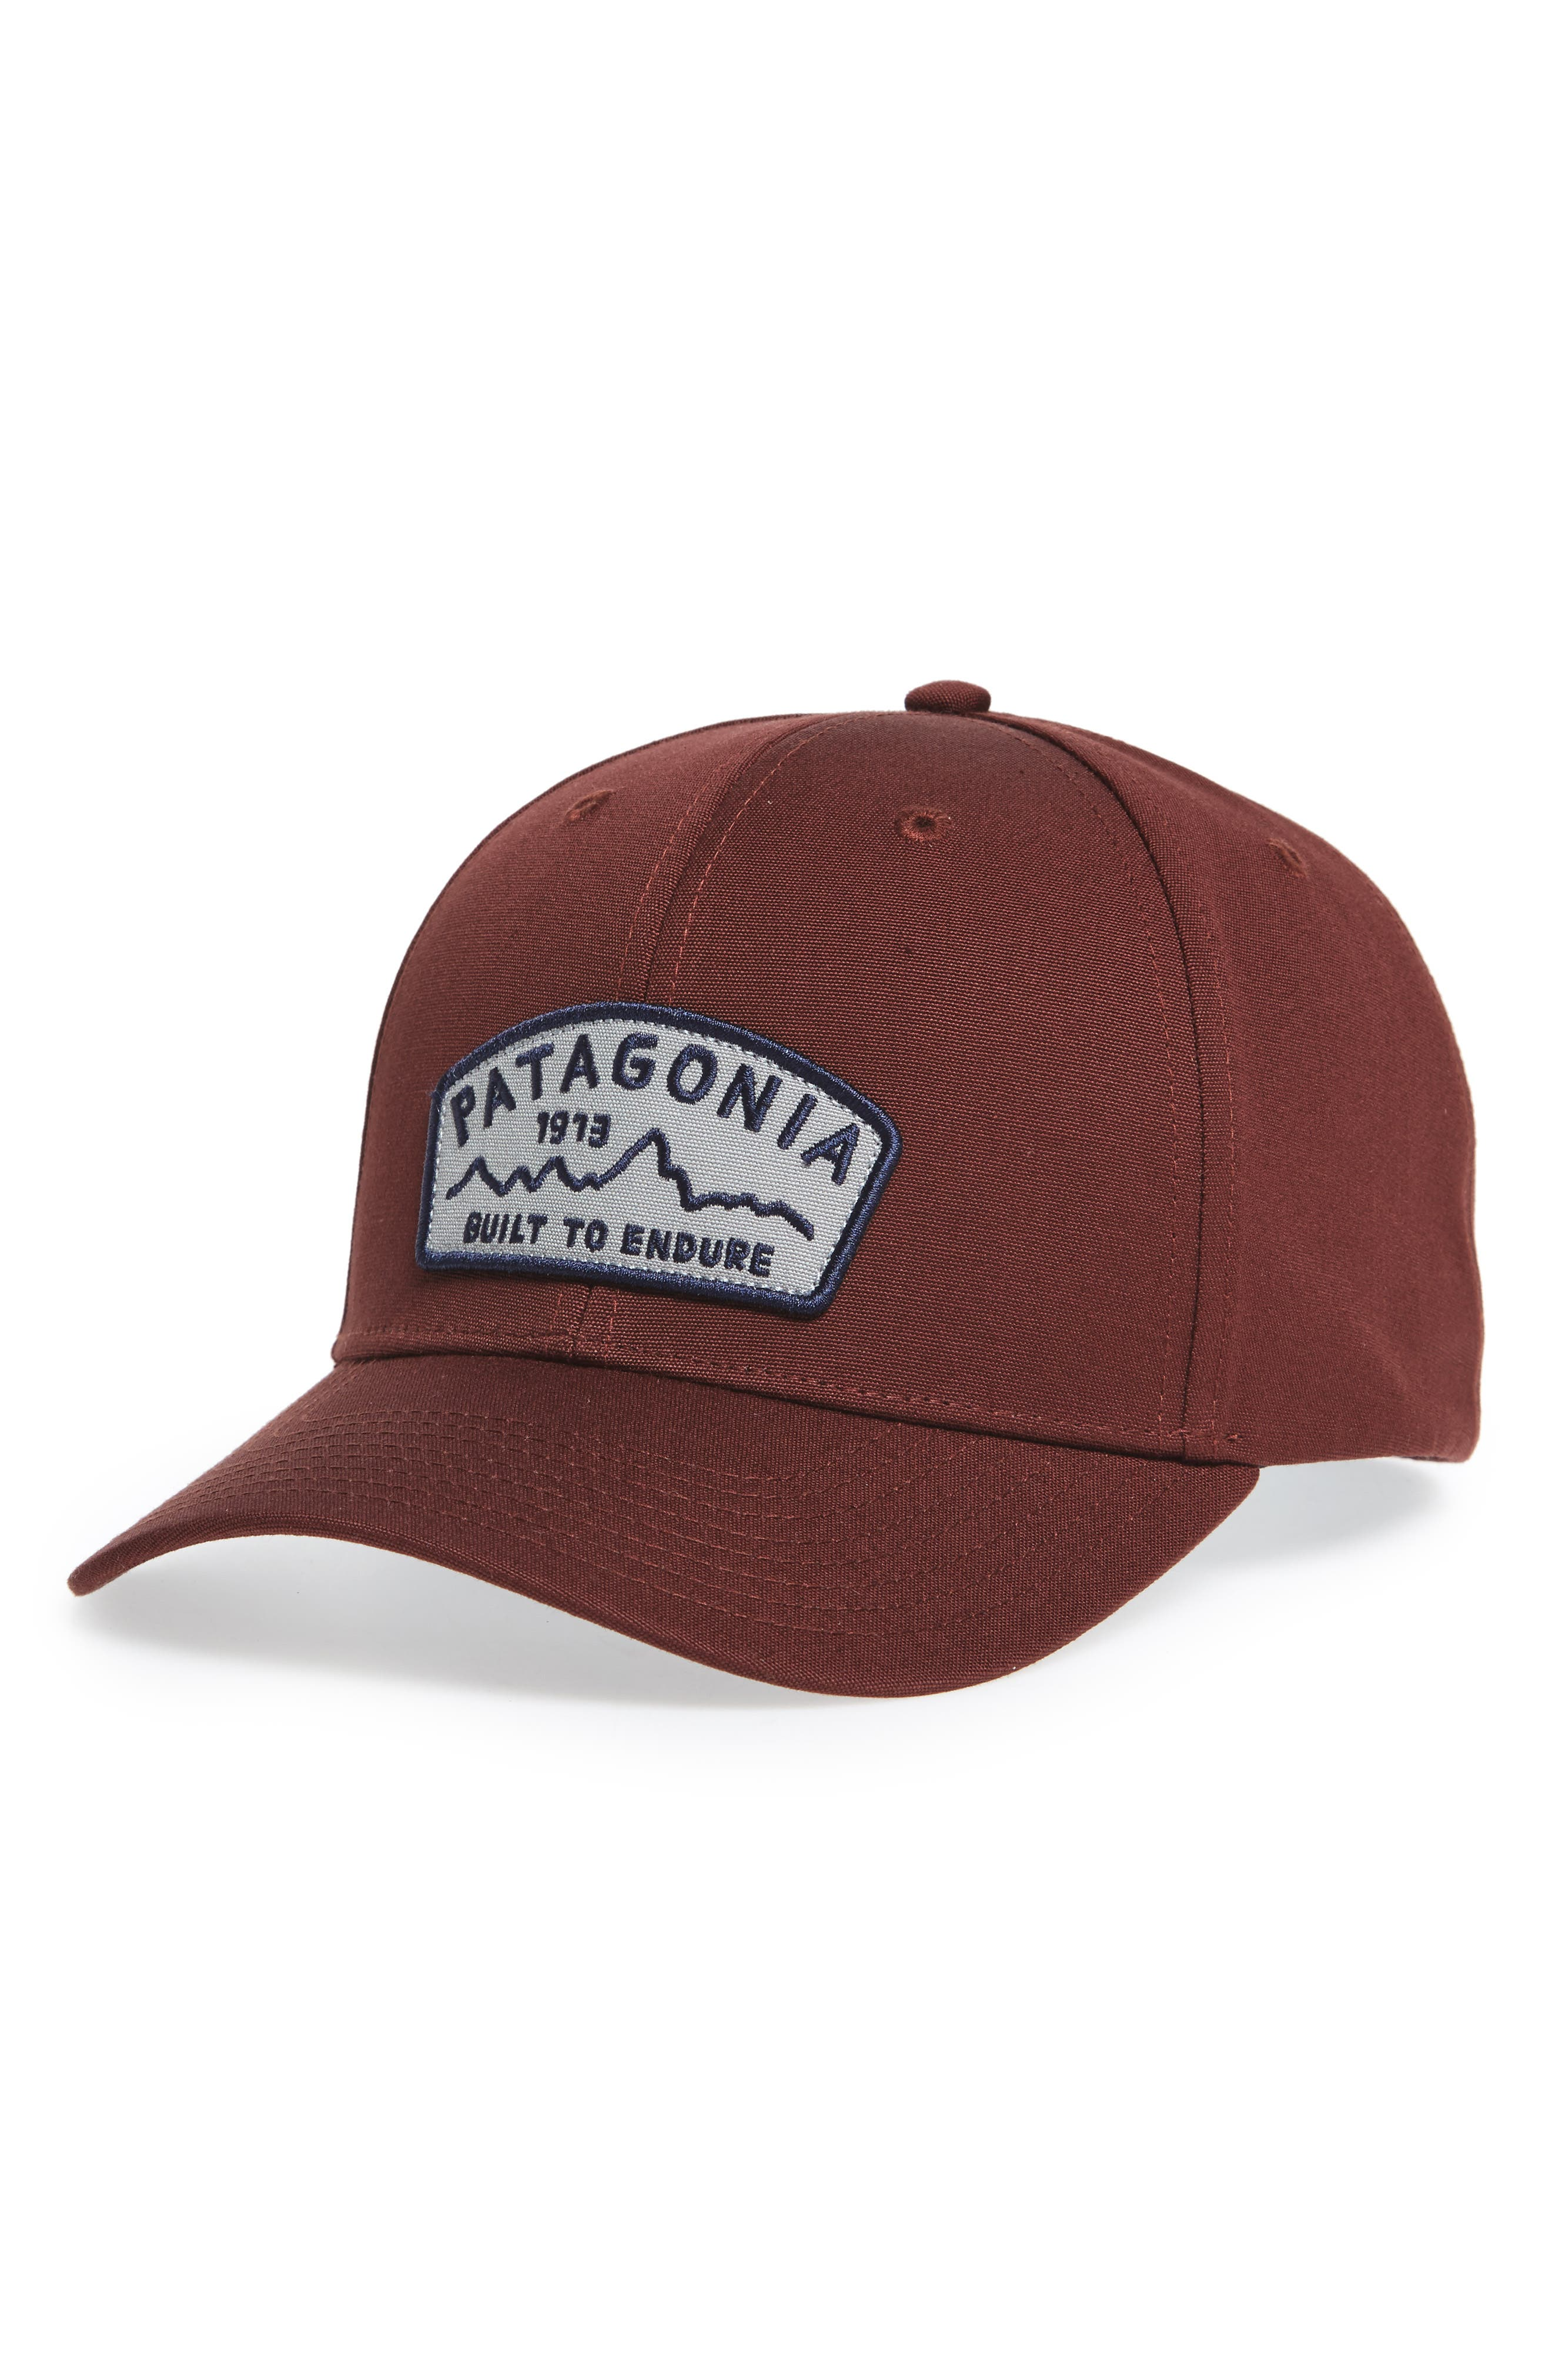 Patagonia Arched Type Roger That Baseball Cap